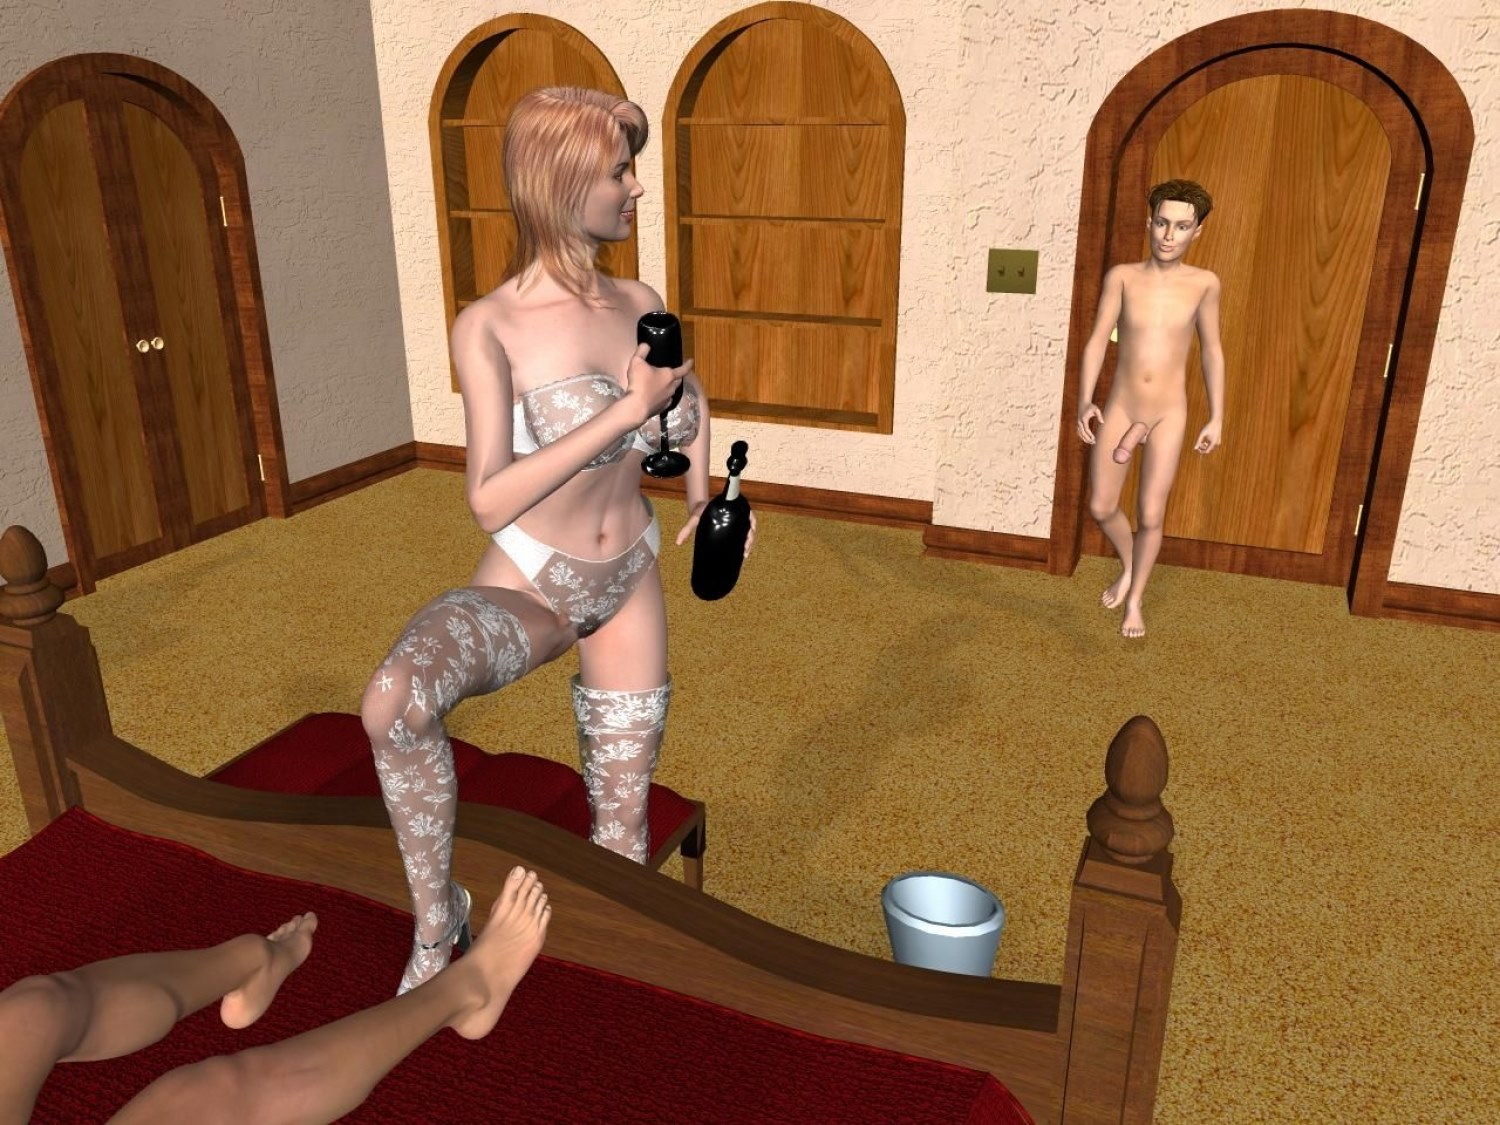 A22 – Hairy Pussy Of My Mother